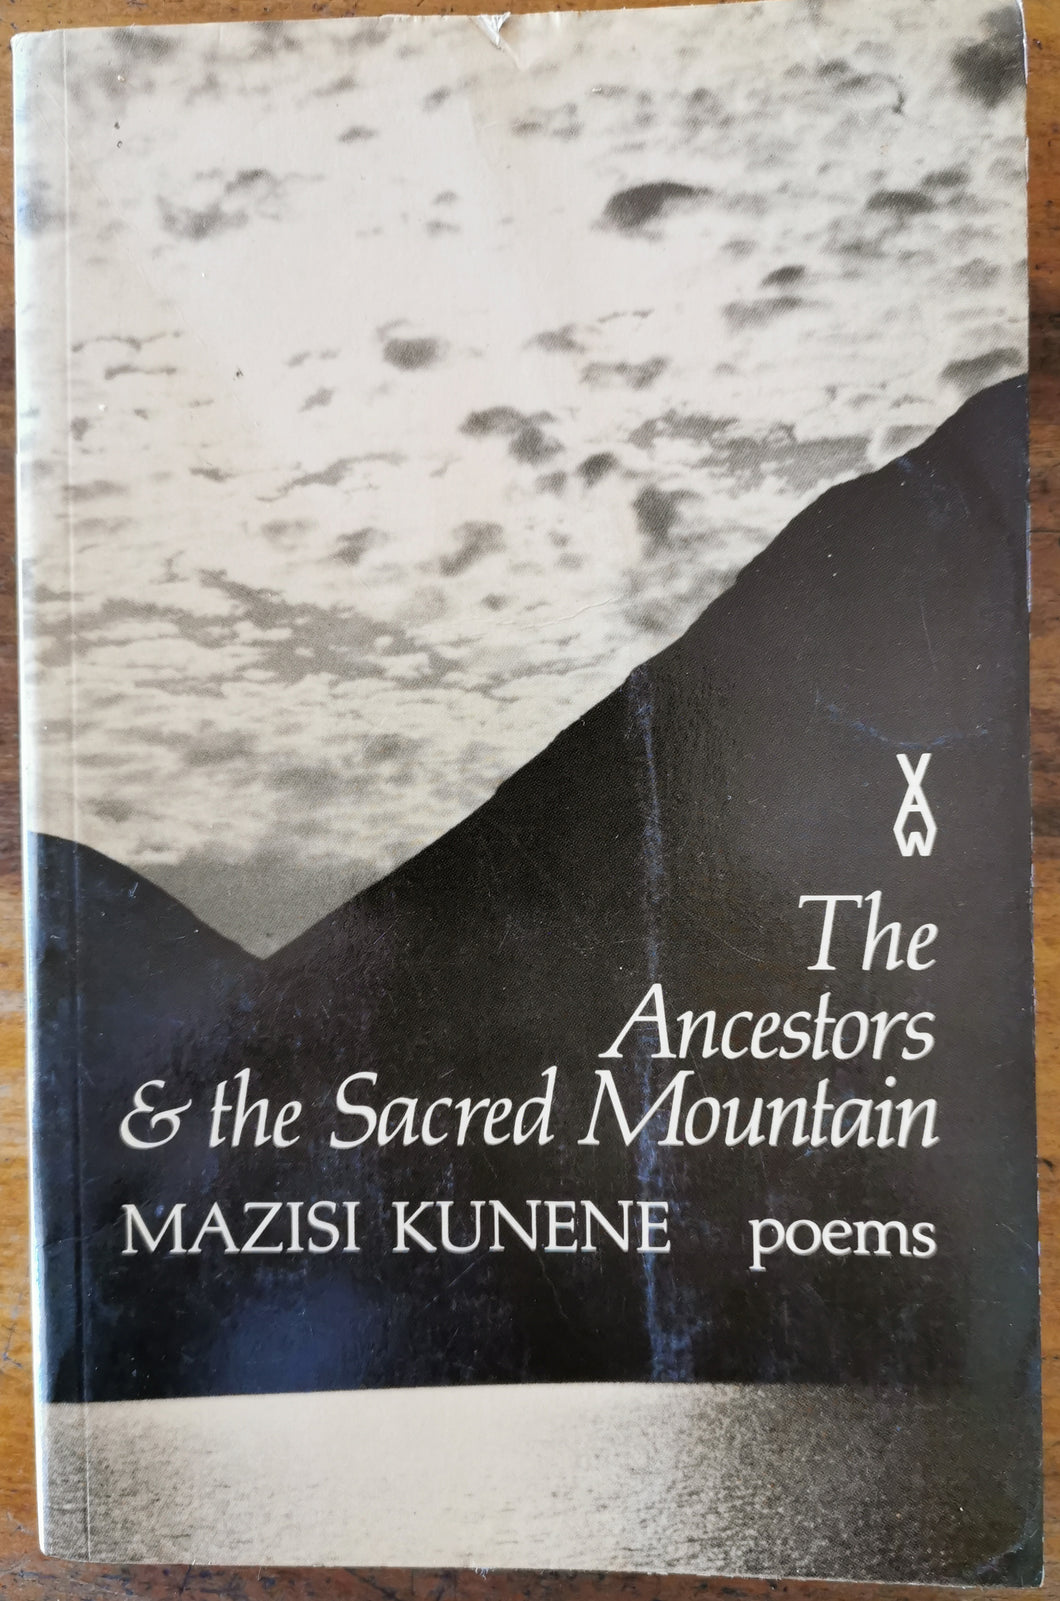 Mazisi Kunene - The Ancestors and the Sacred Mountain